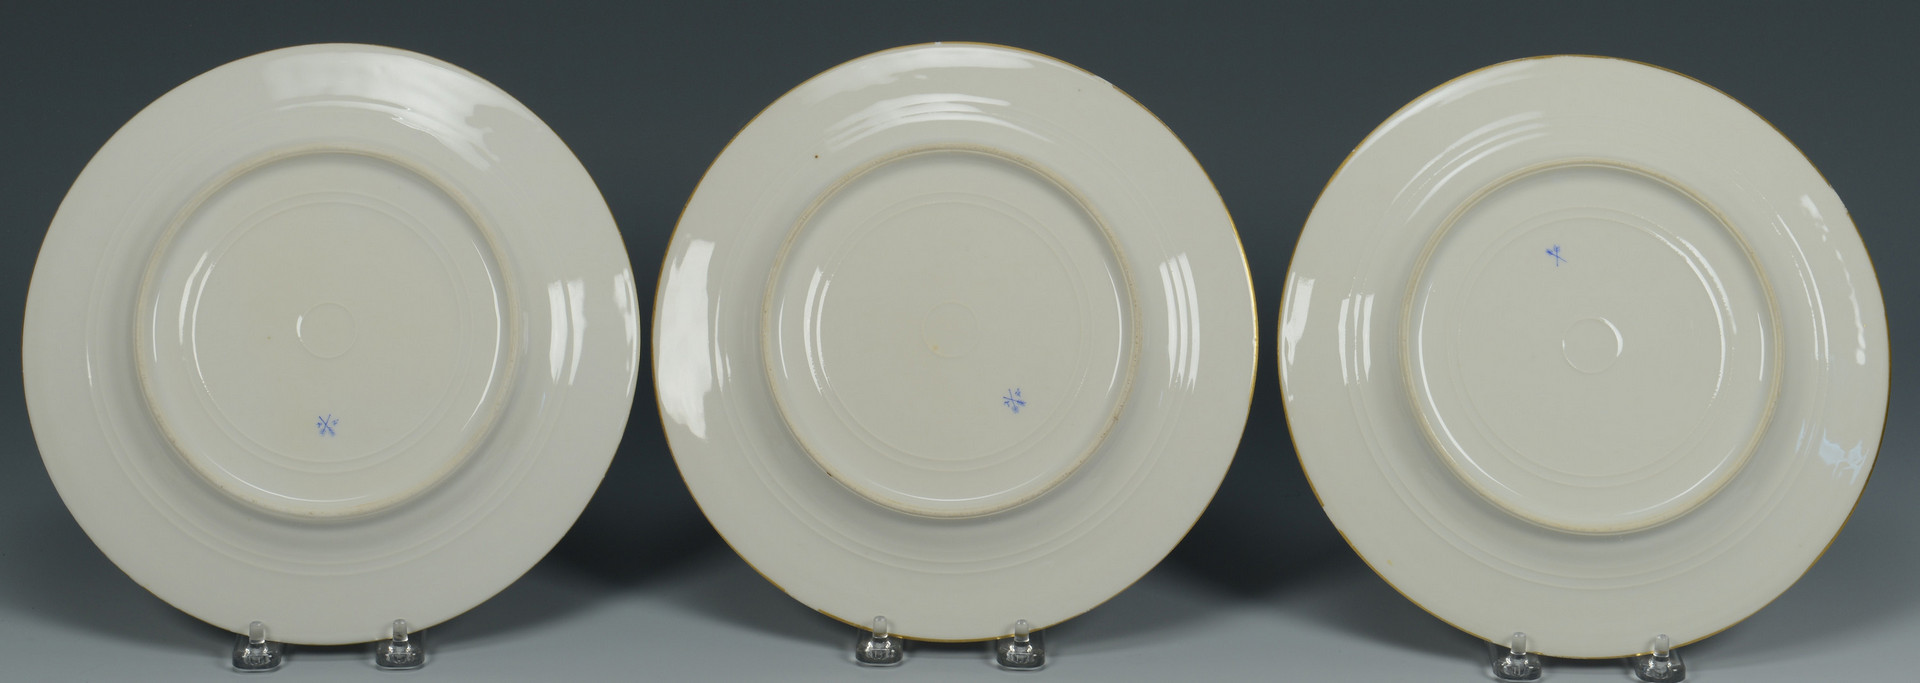 Lot 339: 8 French Porcelain Plates